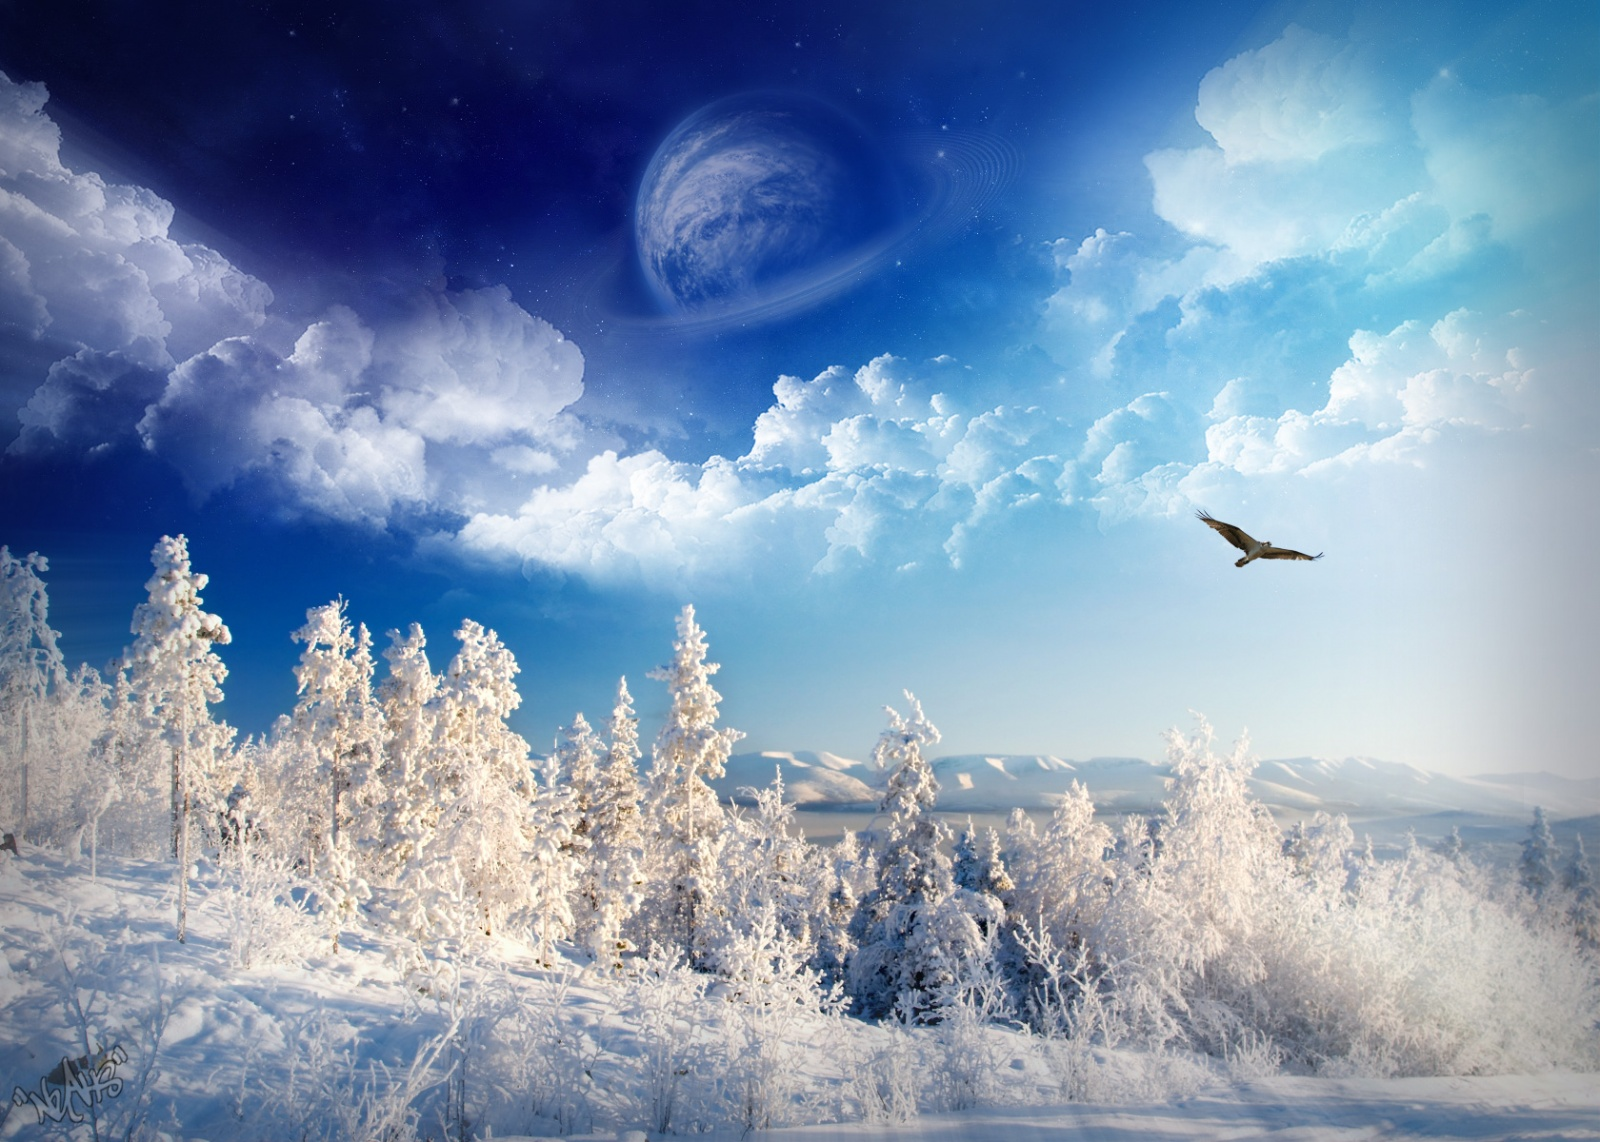 1600x1200 Winter Wonderland desktop PC and Mac wallpaper 1600x1142